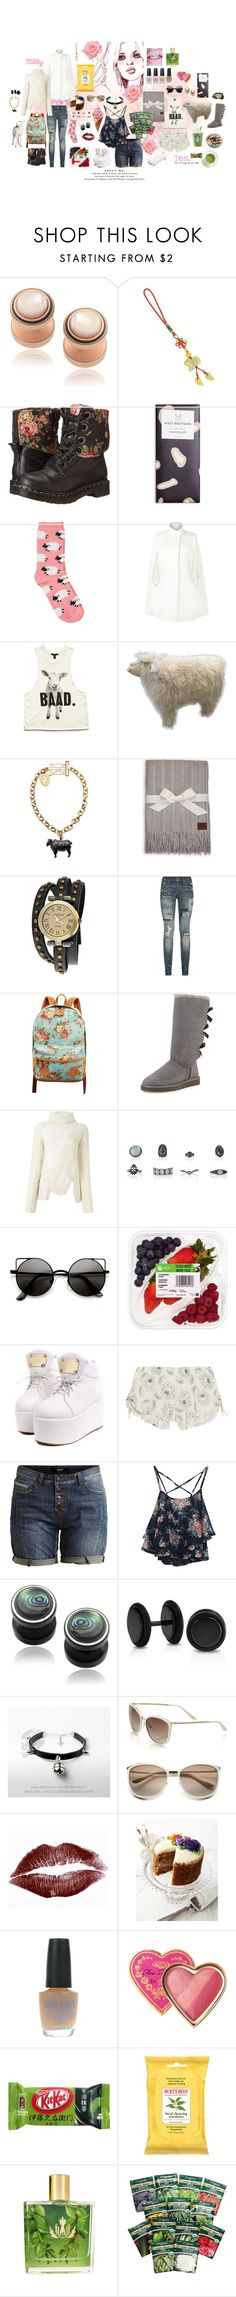 """""""Year of the Sheep 🐑"""" by tinydesu ❤ liked on Polyvore featuring LULU, Dr. Martens, Oasis, Harrods, Forever 21, Joules, UGG Australia, Bling Jewelry, Polo Ralph Lauren and UGG"""